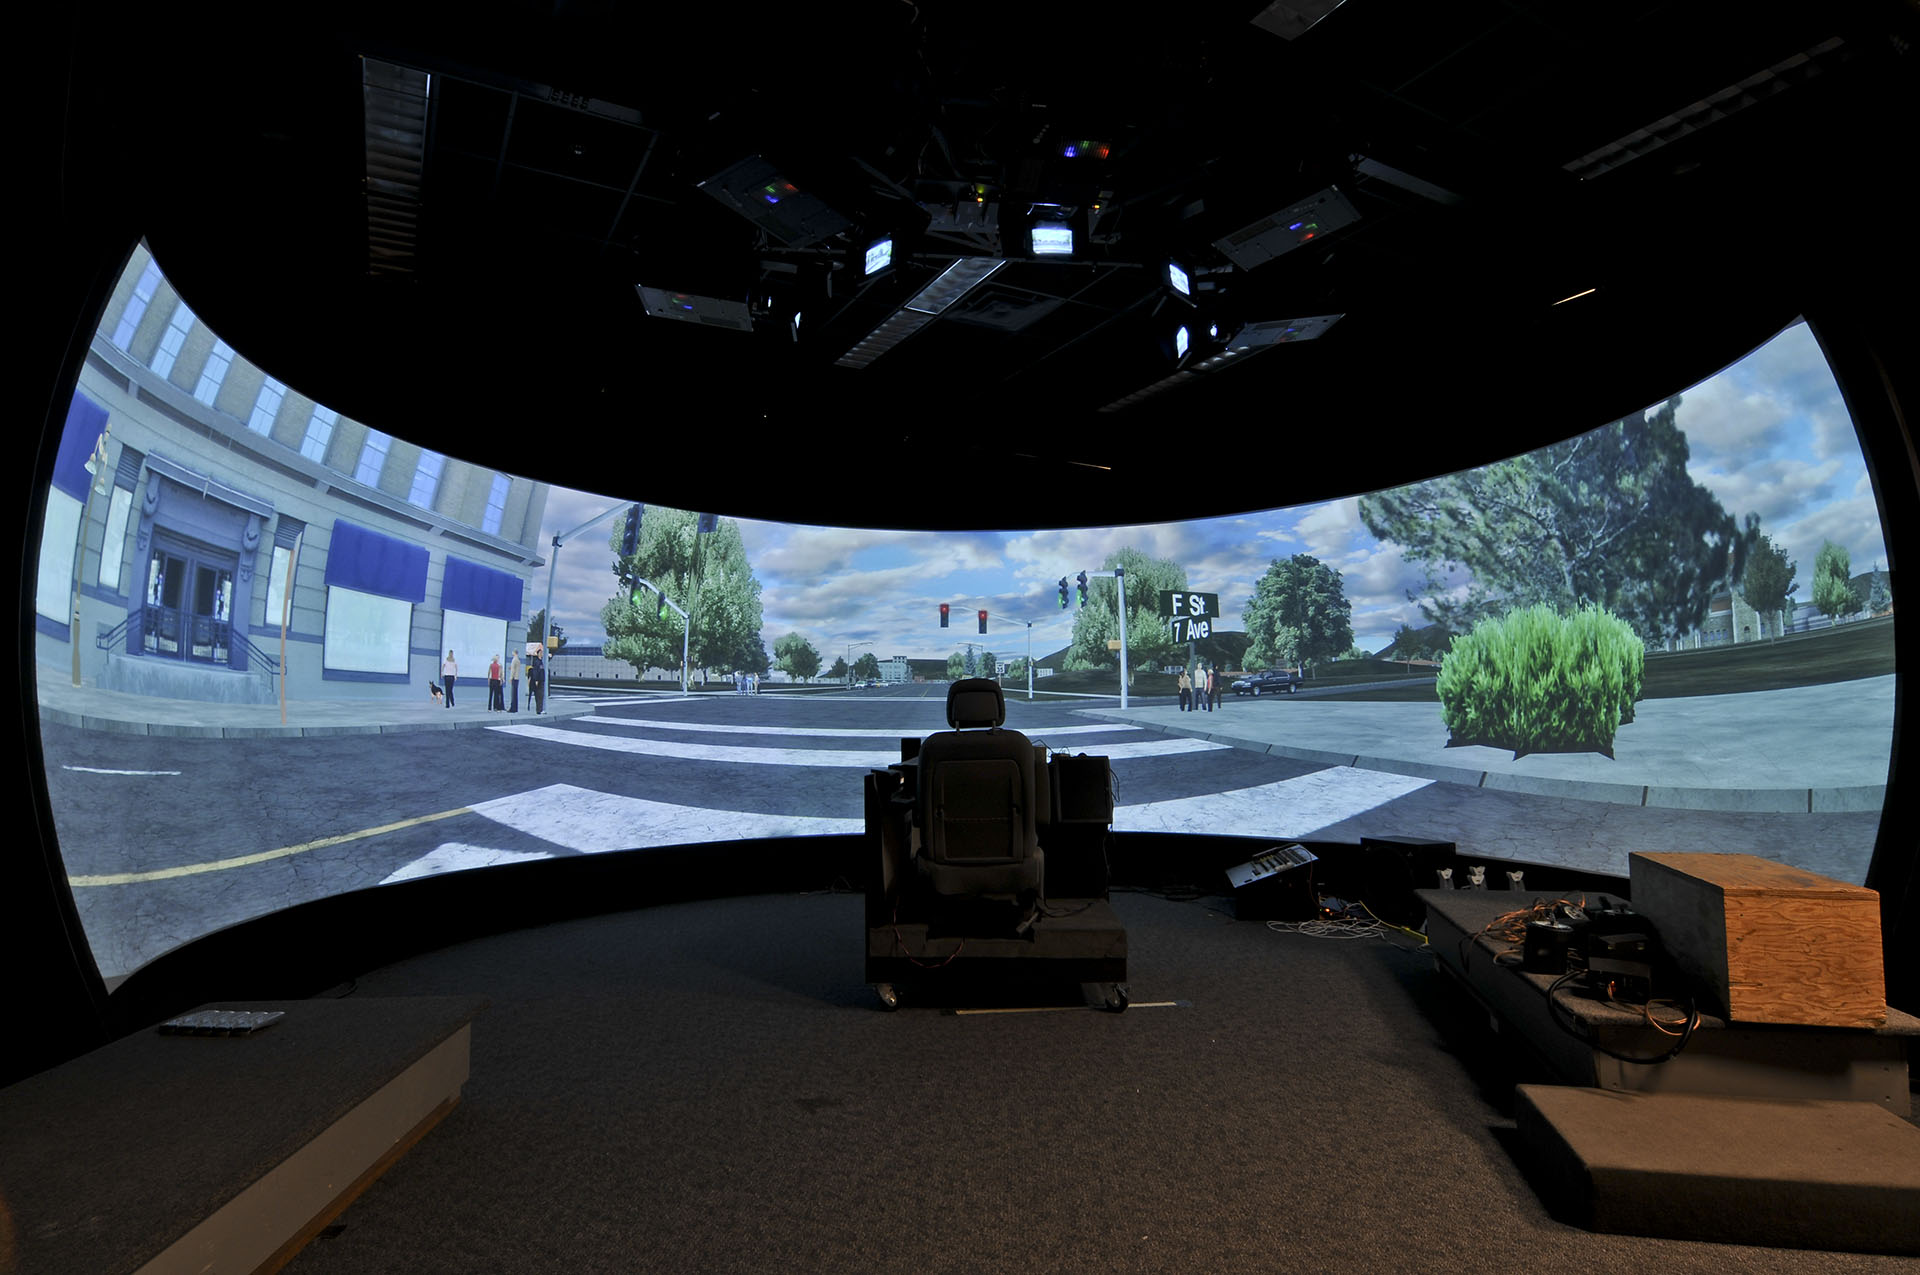 IGI 180 degree projection automotive driving simulator